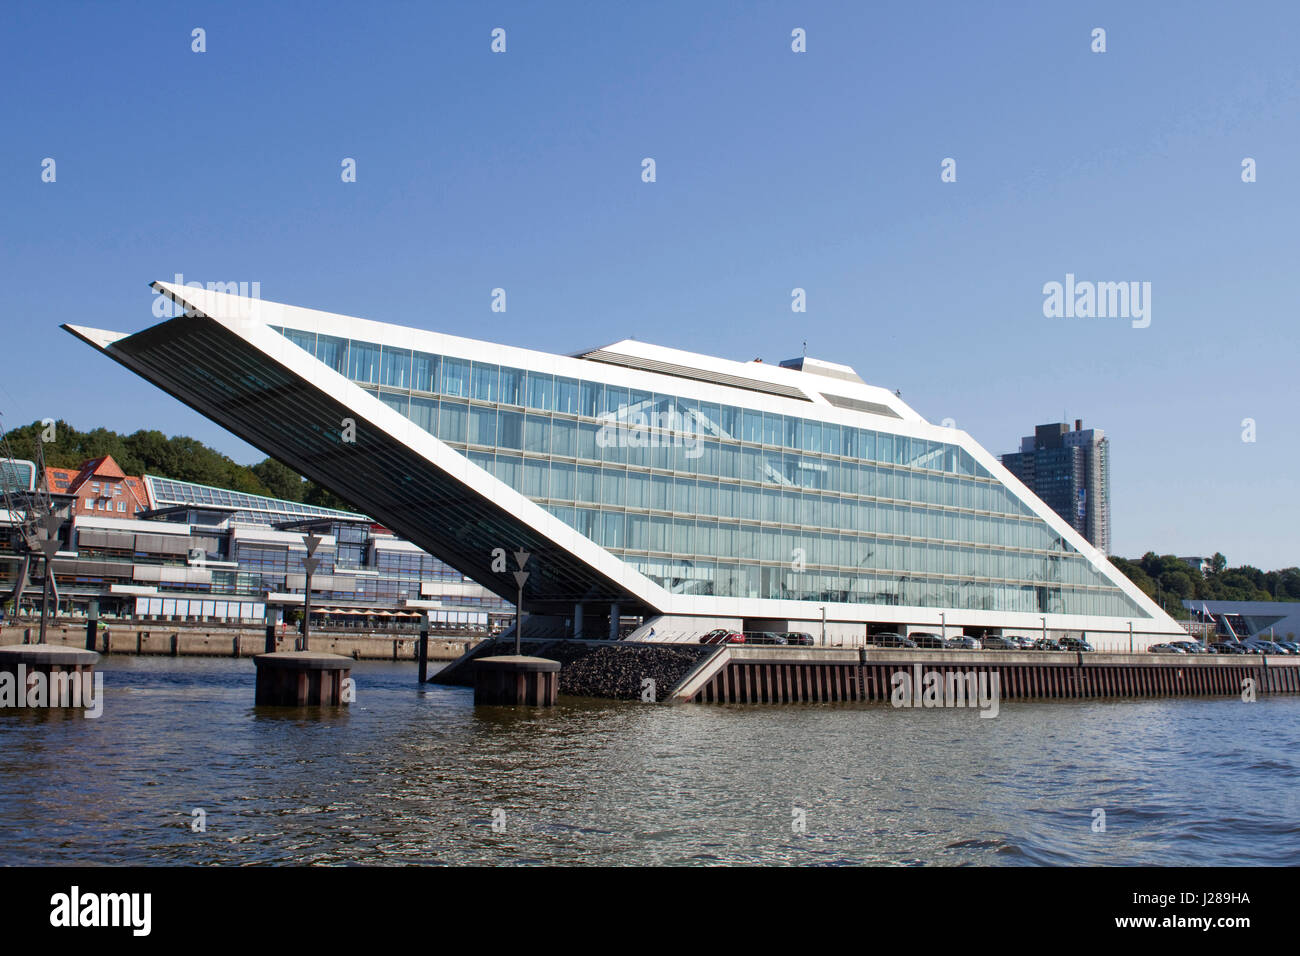 Hamburg Architektur Germany, Hamburg, Elbe River, Dockland Office Building (brt Stock Photo - Alamy